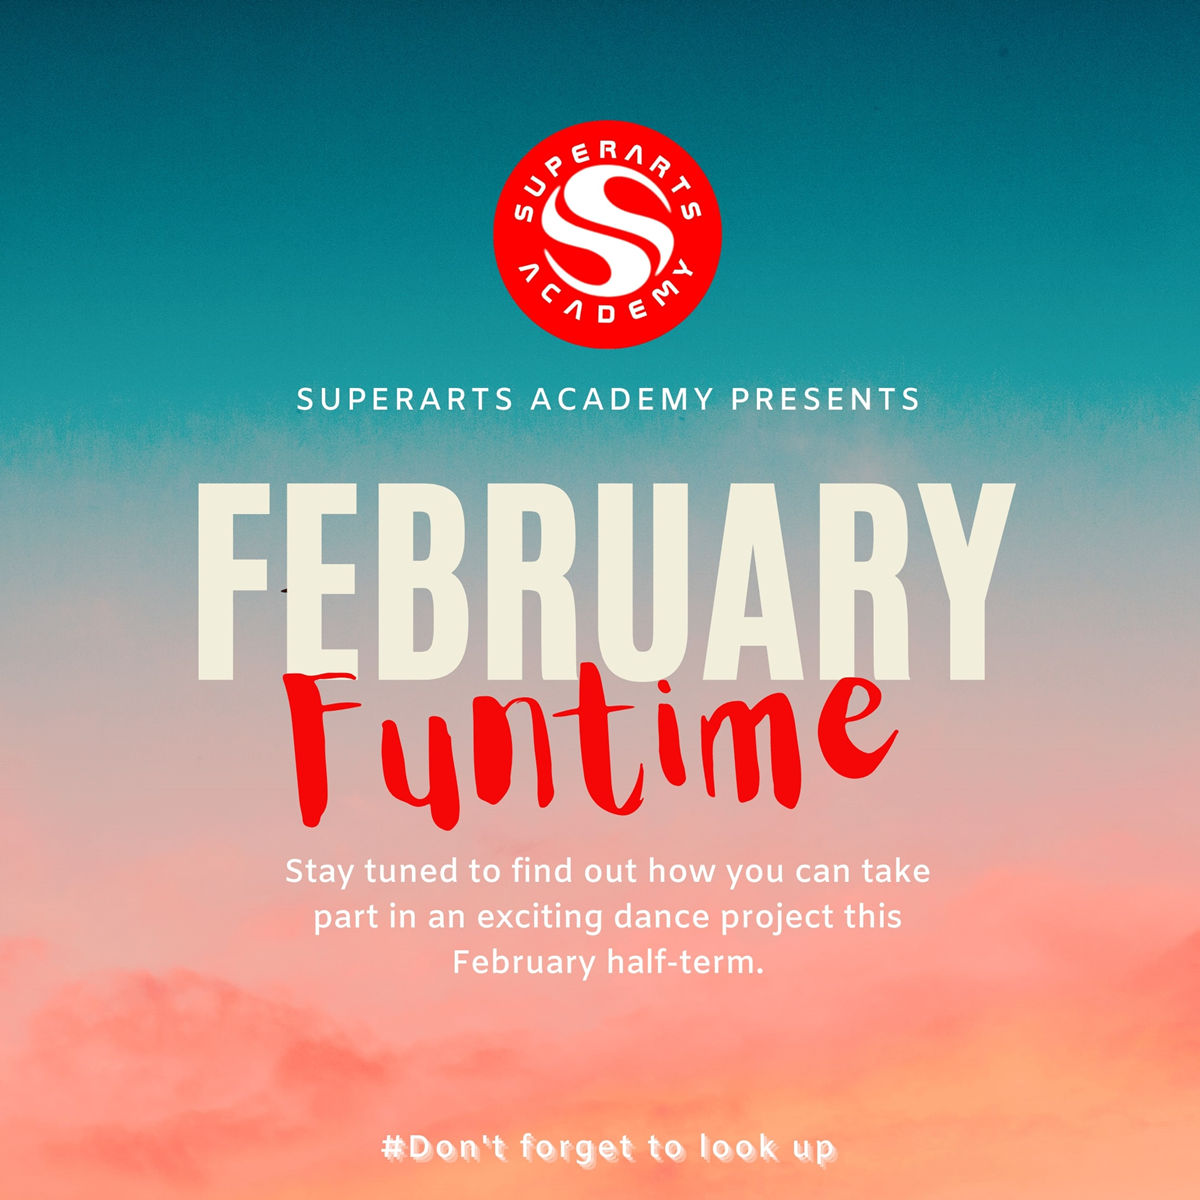 article thumb - Superarts presents FEBRUARY FUNTIME